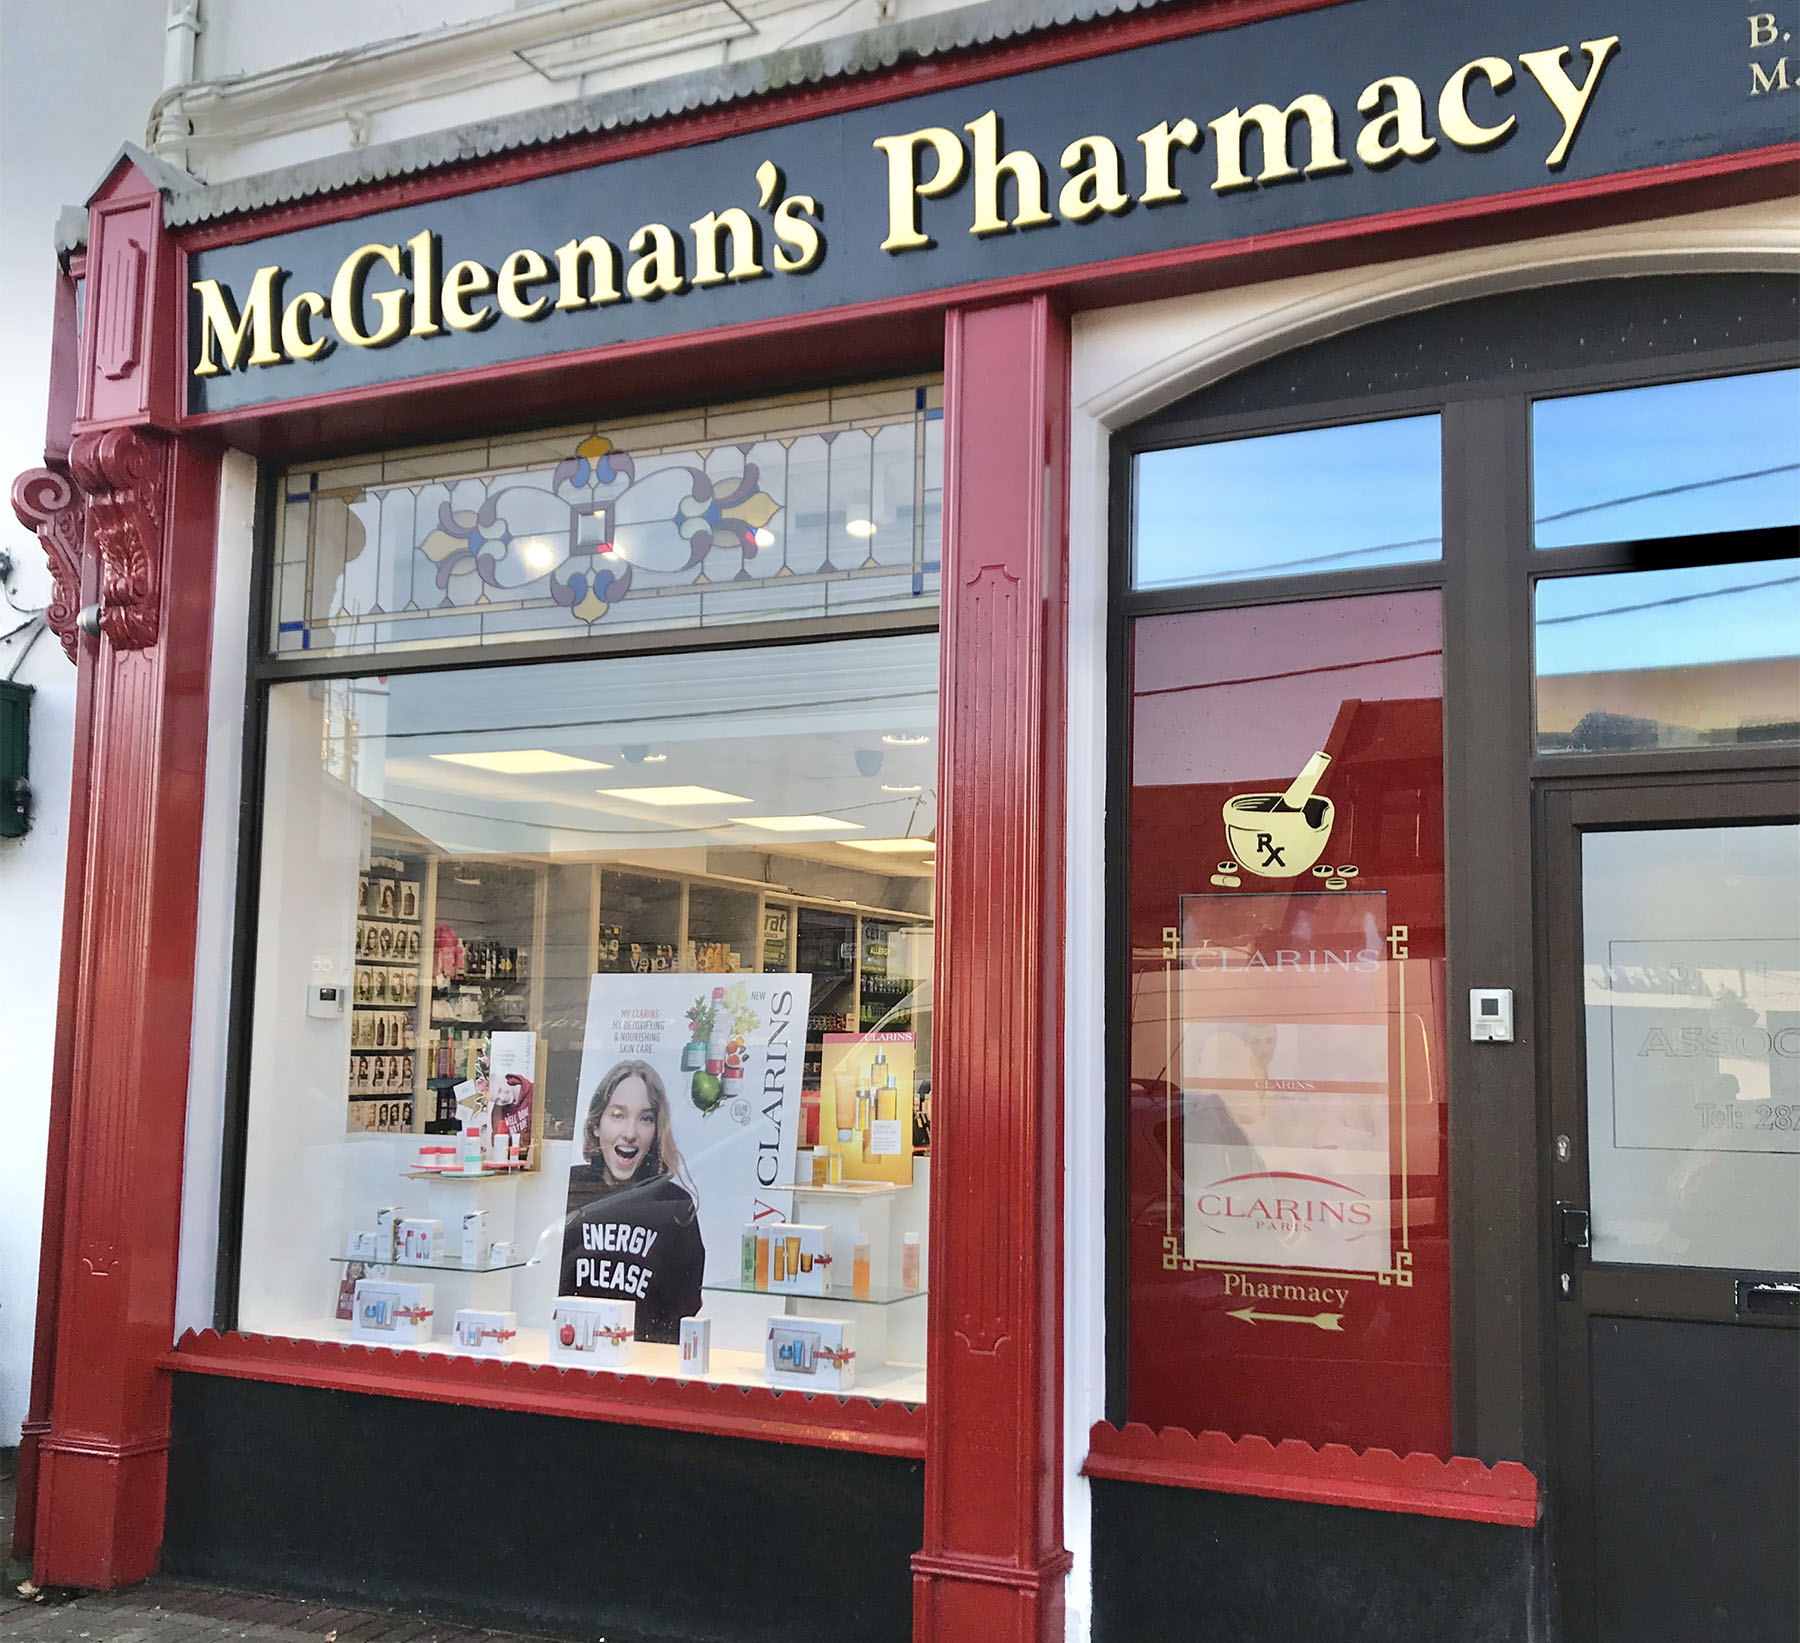 McGleenans Pharmacy